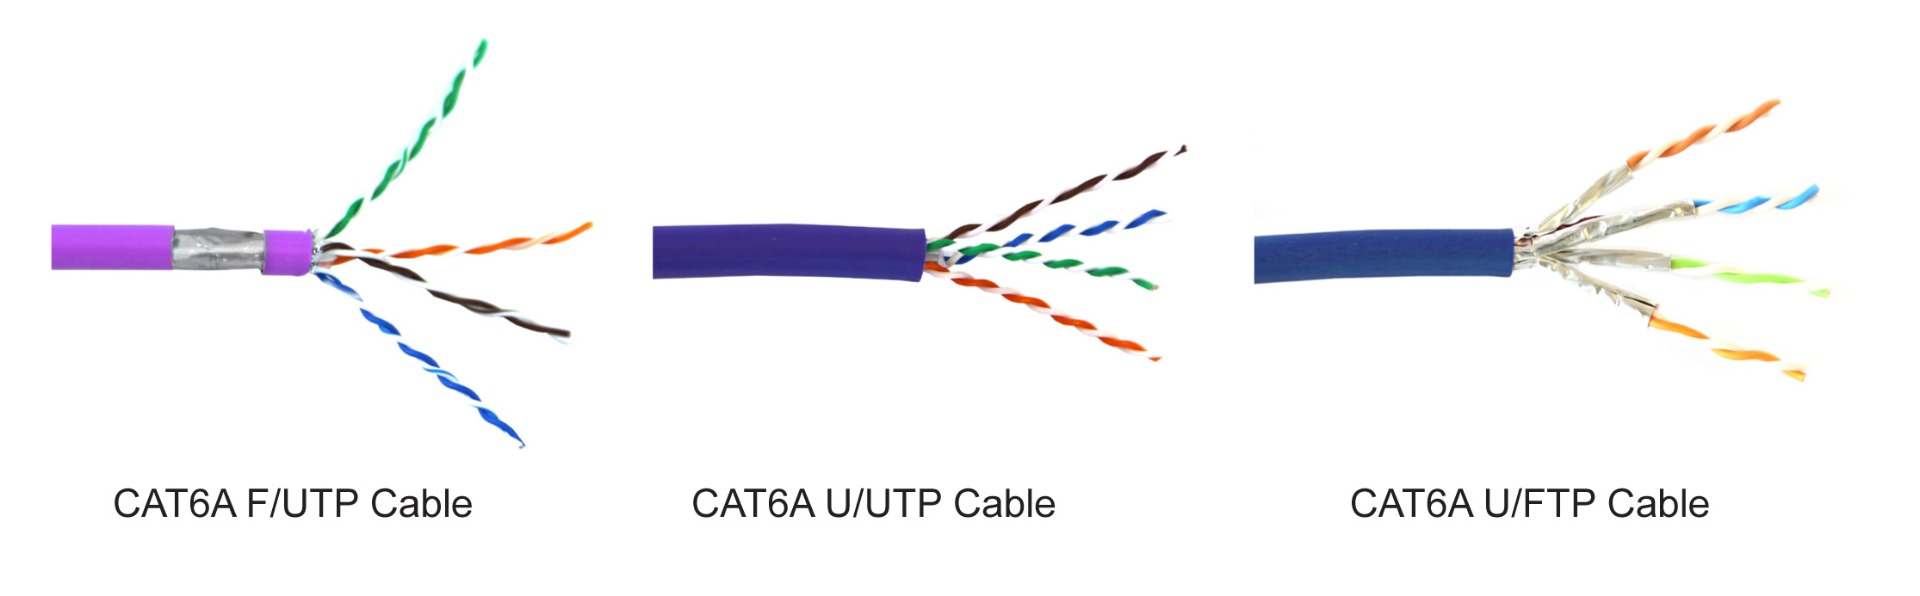 additional benefits of a shielded cat 6a solution